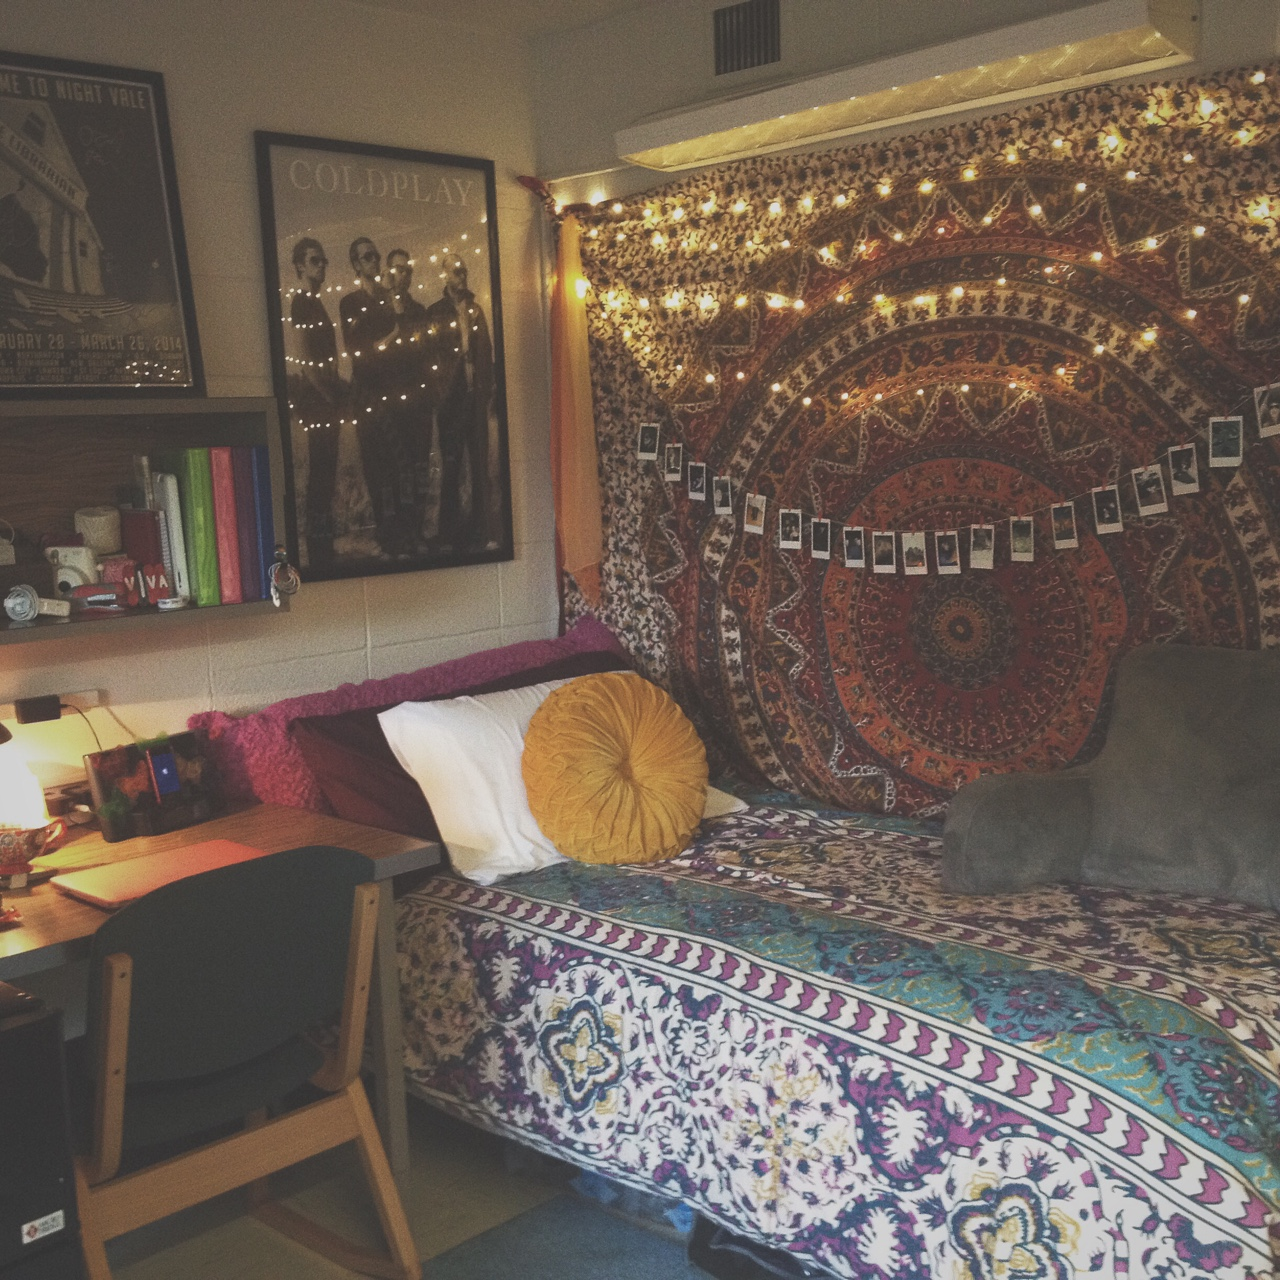 Dorm decorating ideas by style society19 - Cool dorm room ideas ...